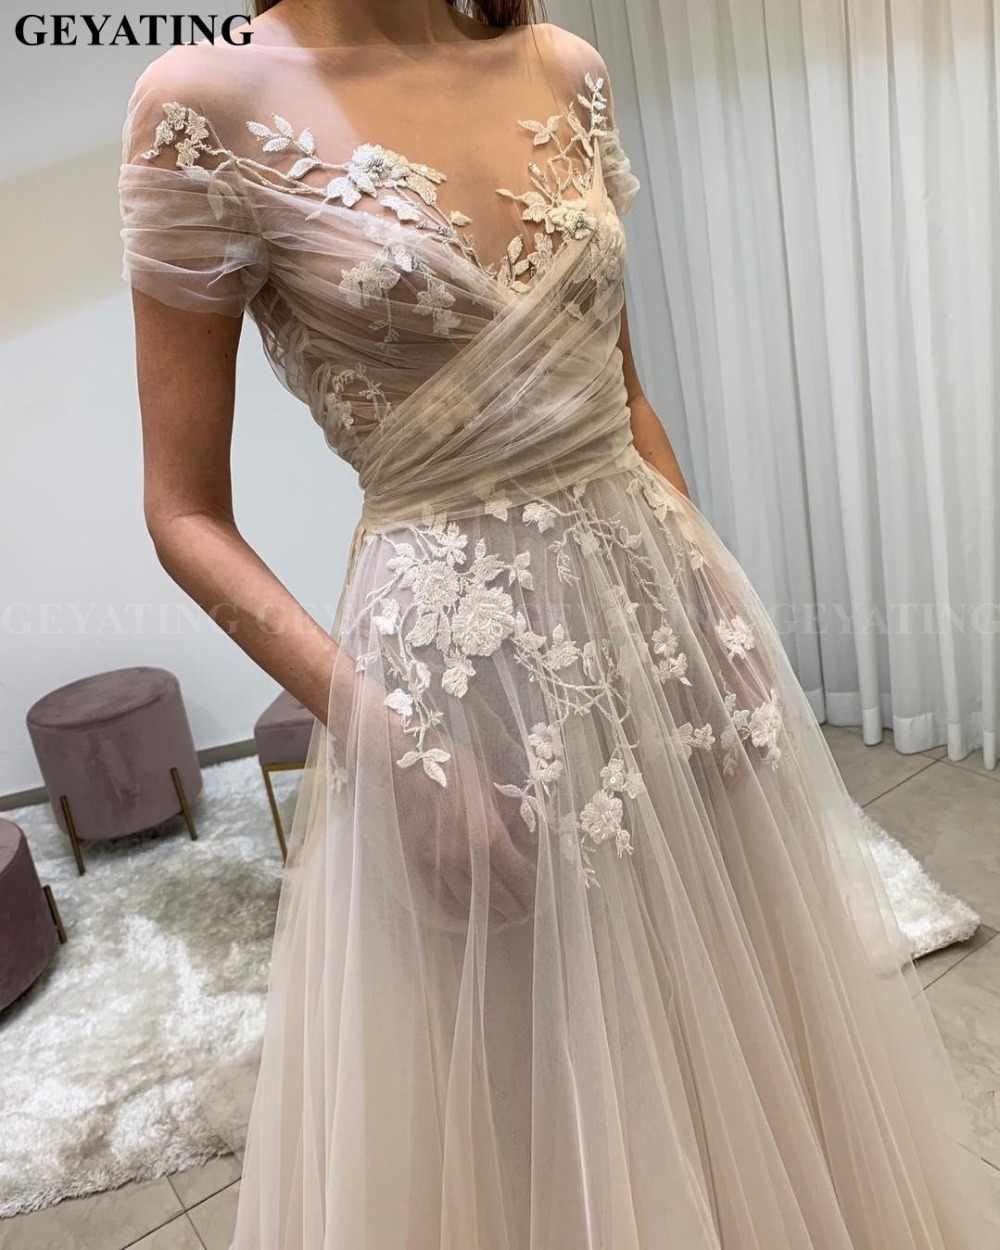 Vintage Sheer Lace Floral Boho Wedding Dress With Sleeve Pockets A